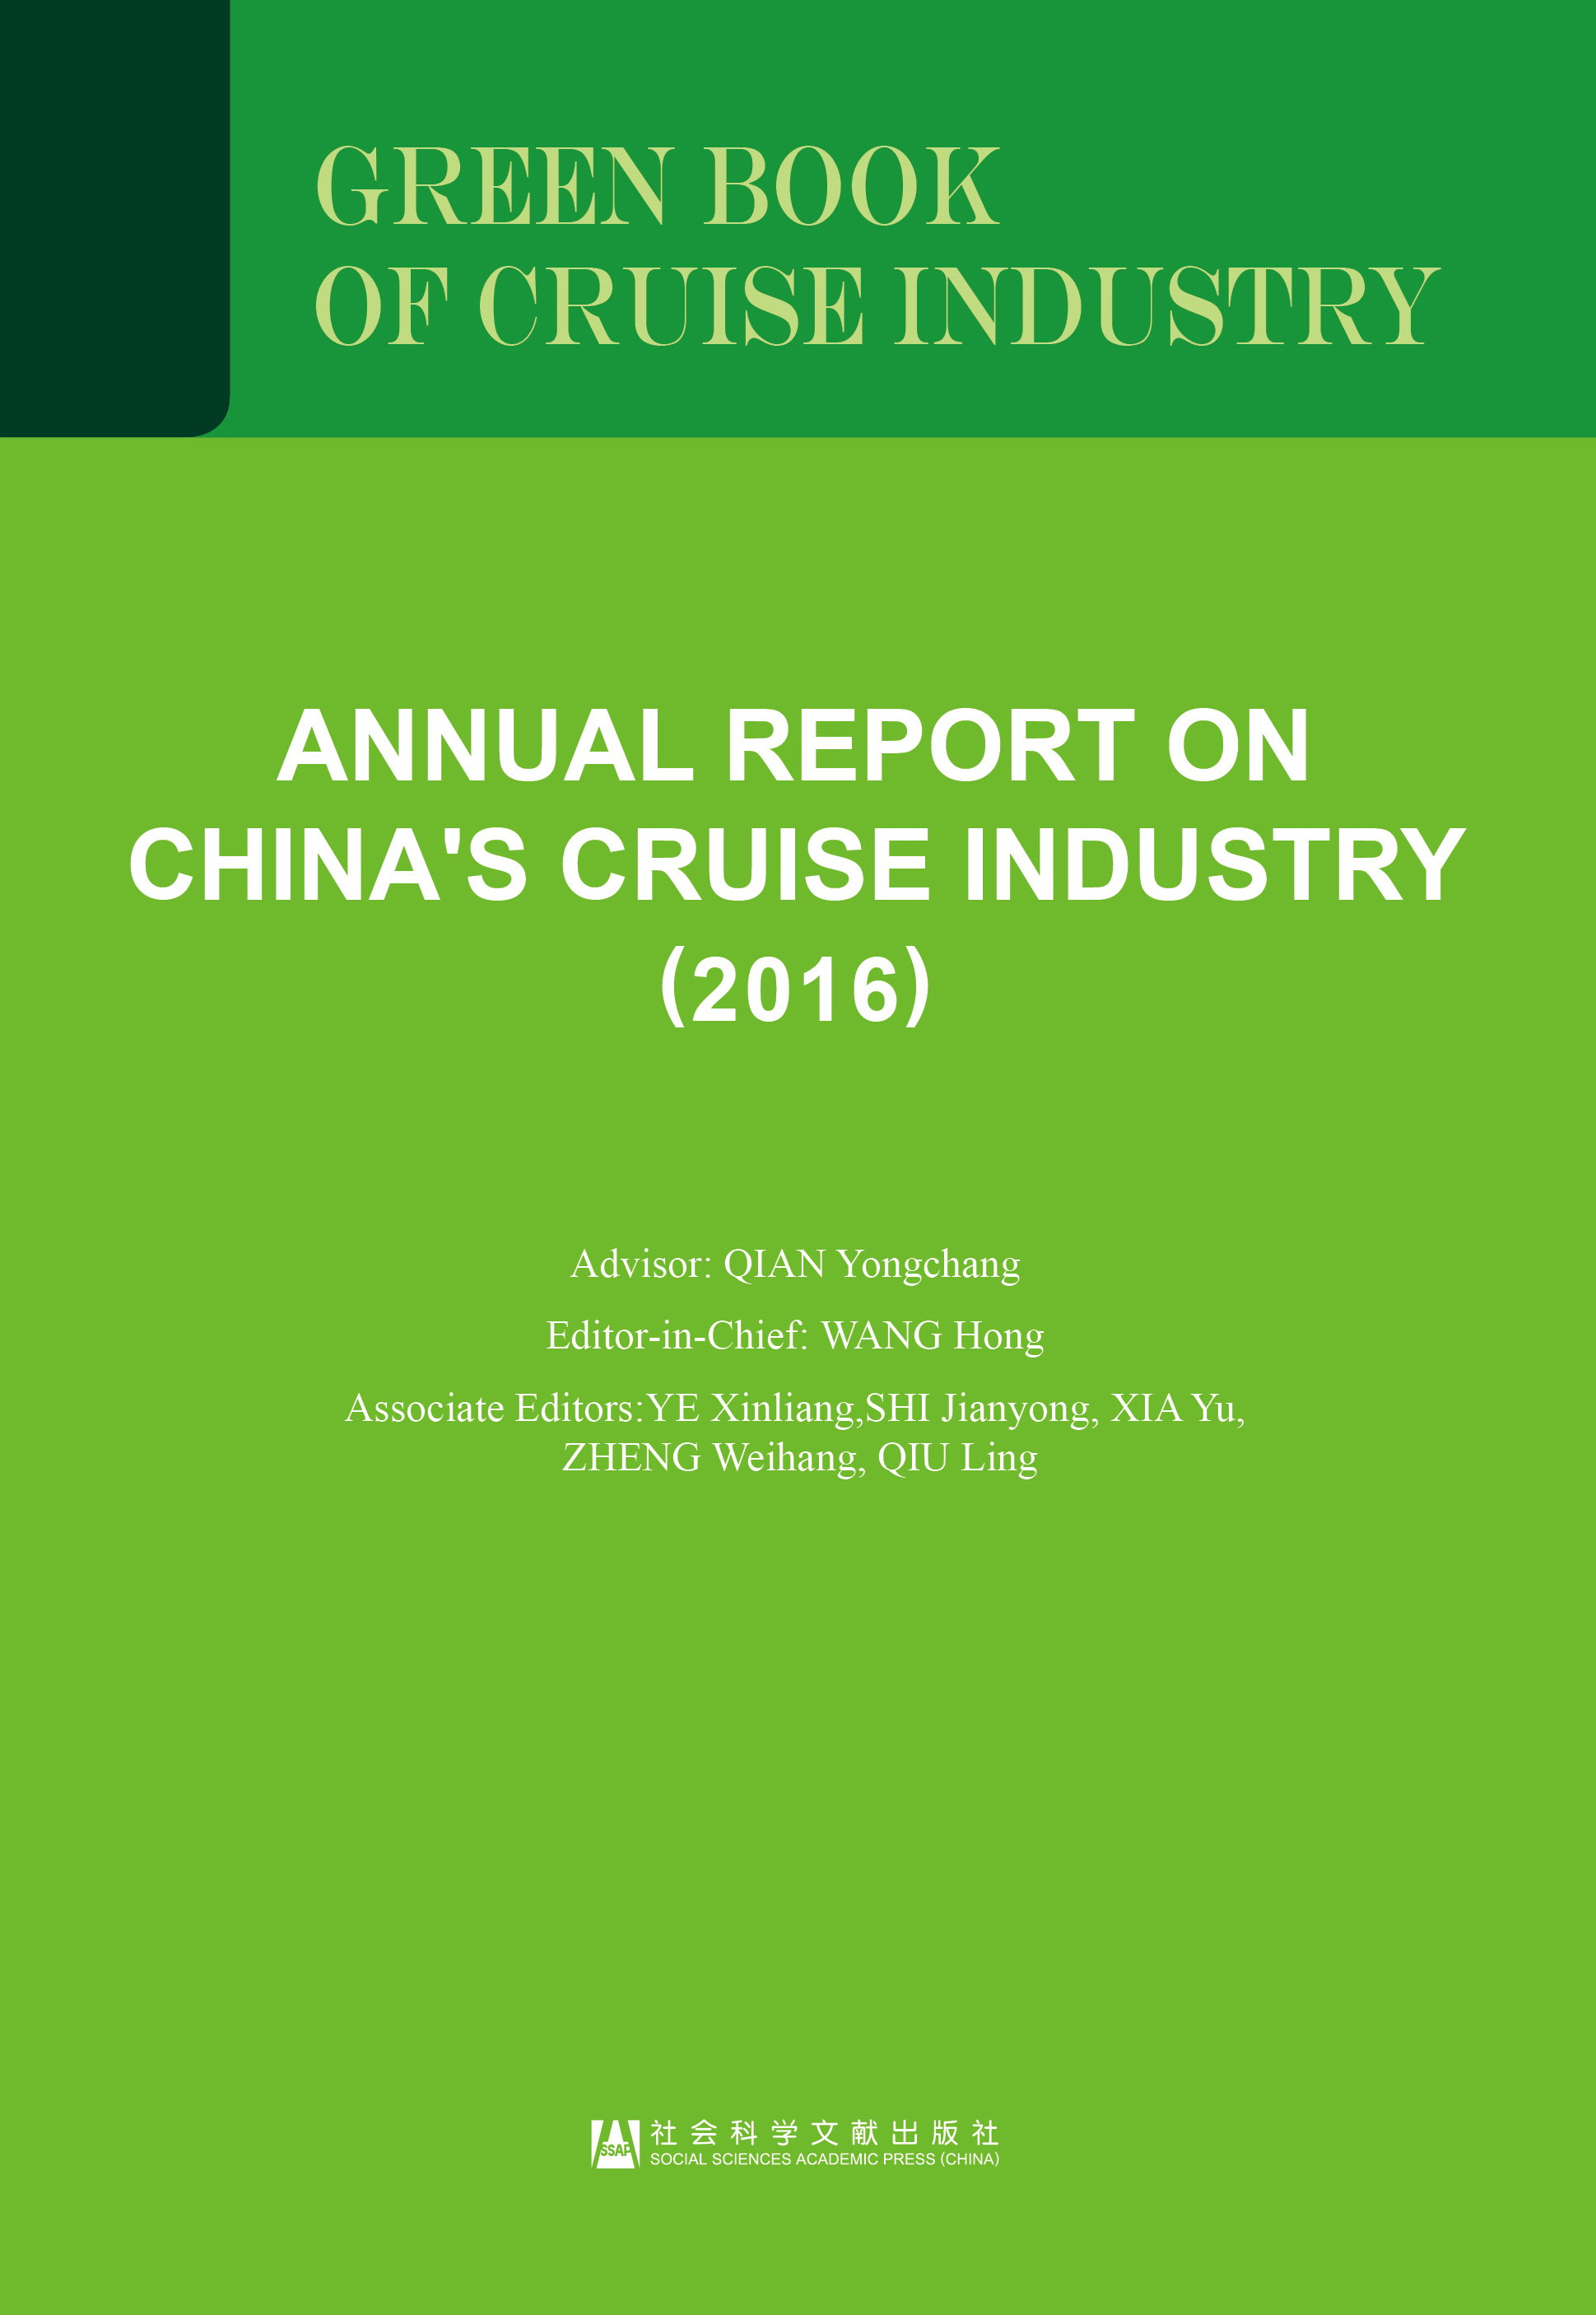 ANNUAL REPORT ON CHINA'S CRUISE INDUSTRY (2016)